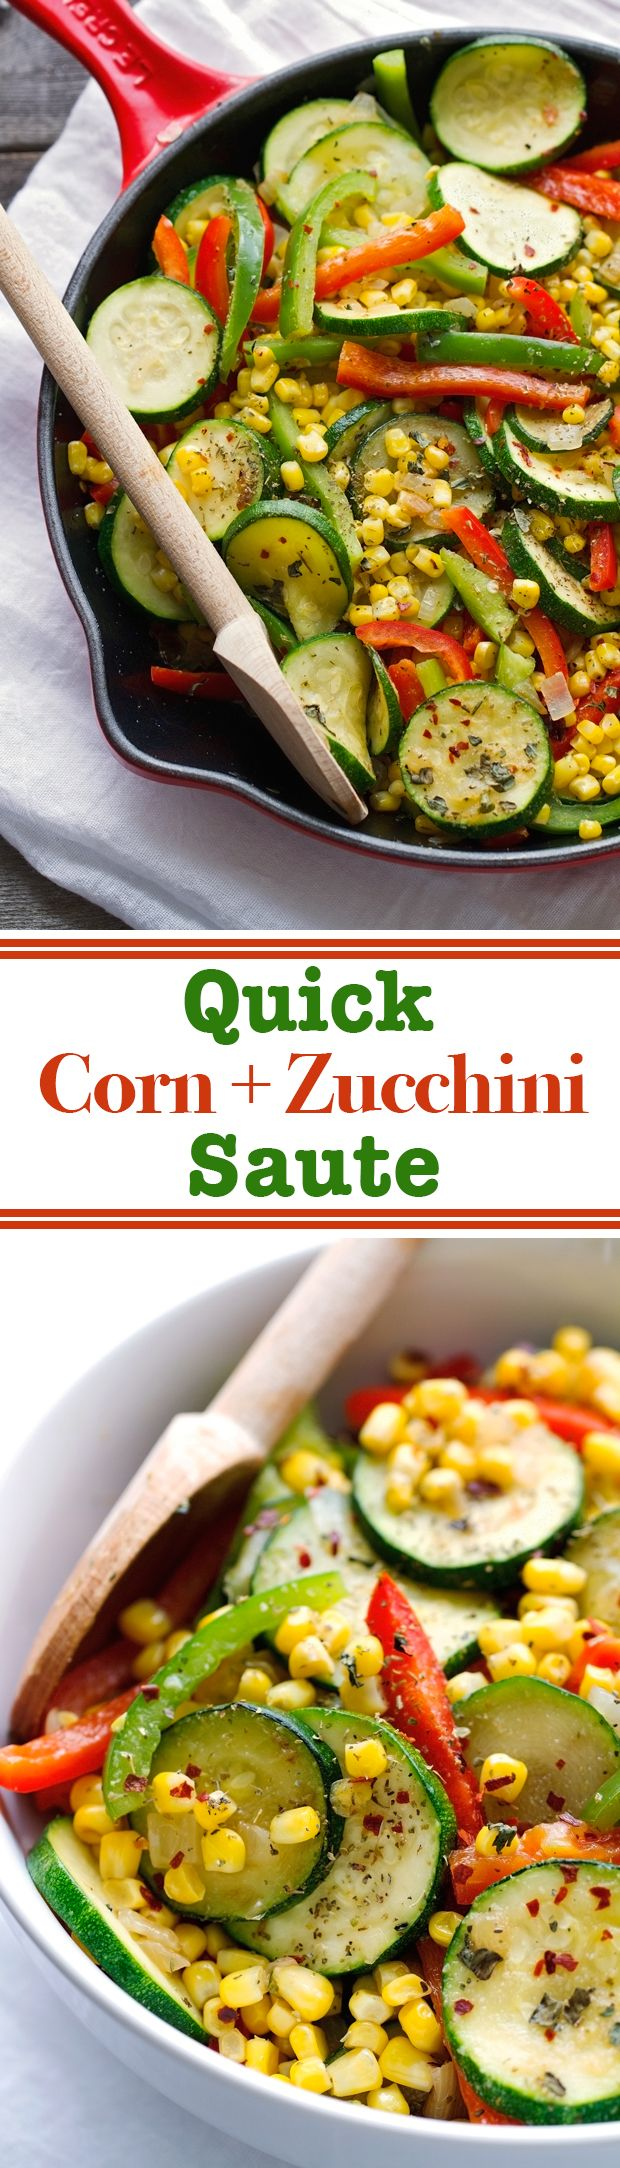 Quick Corn and Zucchini Saute thats ready in 10 minutes are is the perfect side dish for any meal